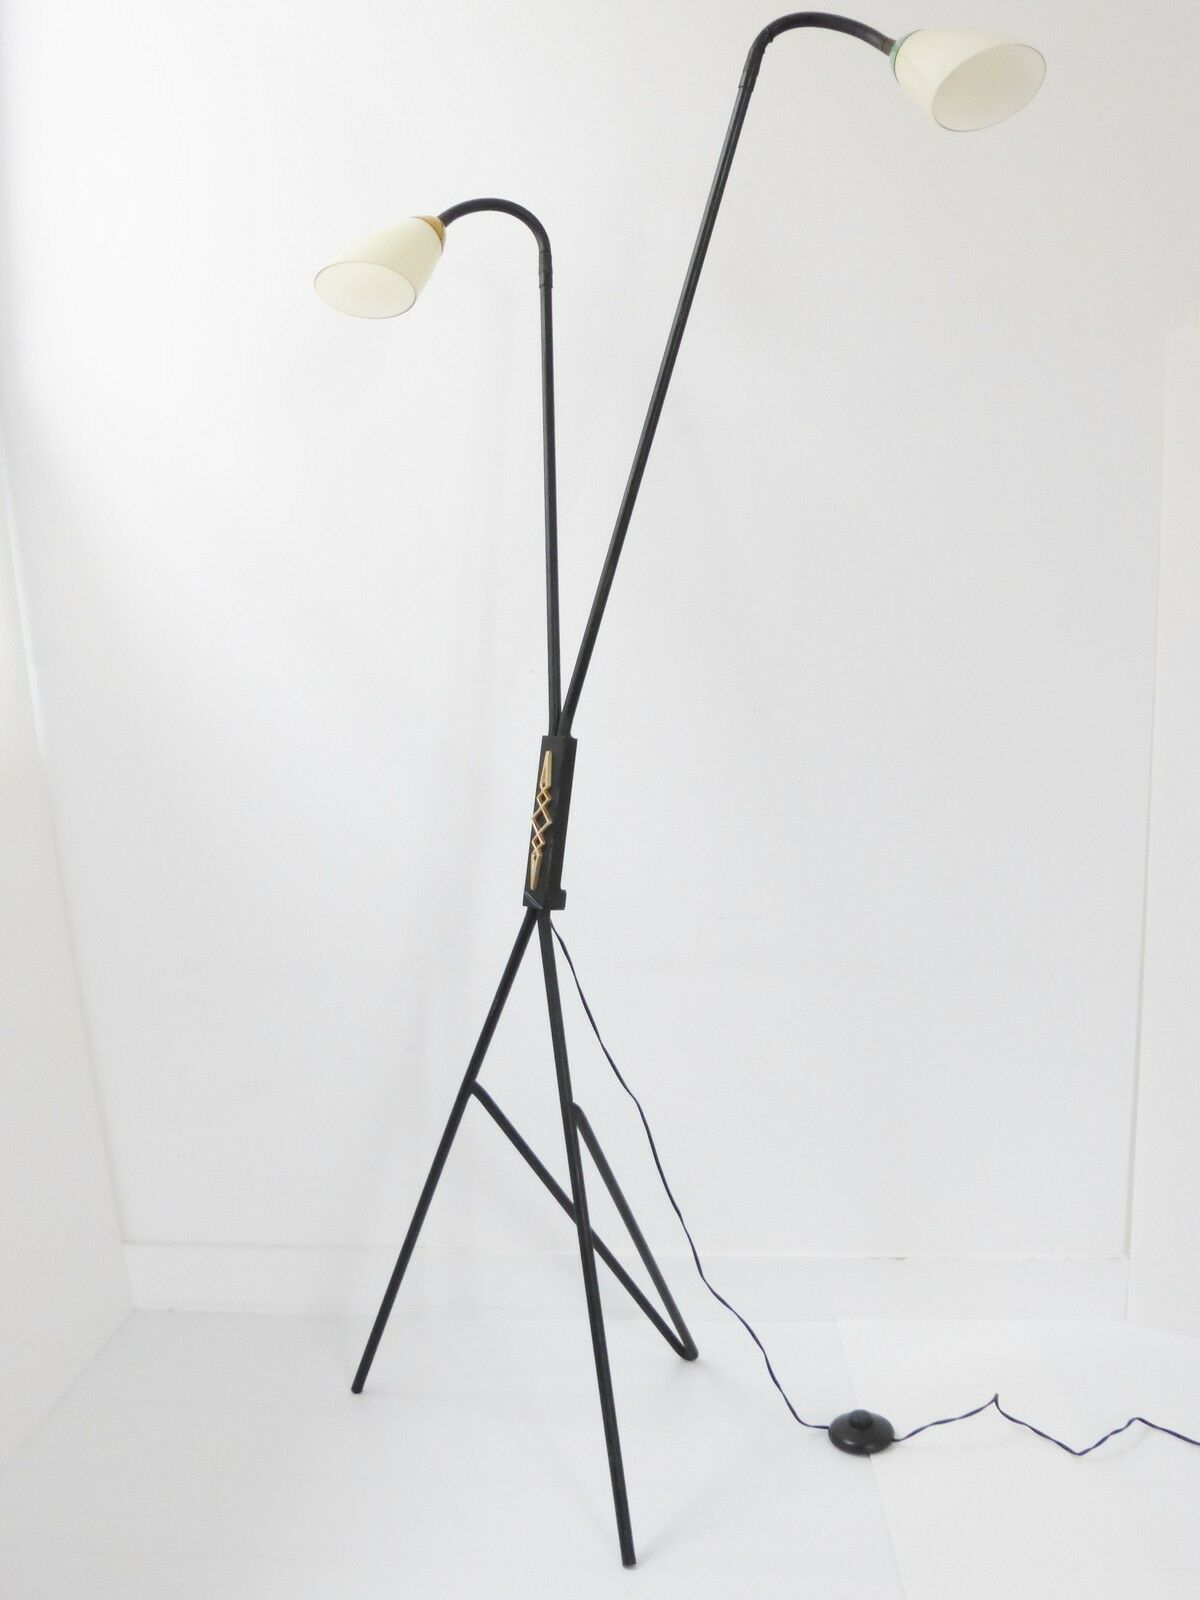 SUPERBE LAMPADAIRE LISEUSE DOUBLE 1950 VINTAGE 50S FRENCH ROCKABILLY FLOOR LAMP